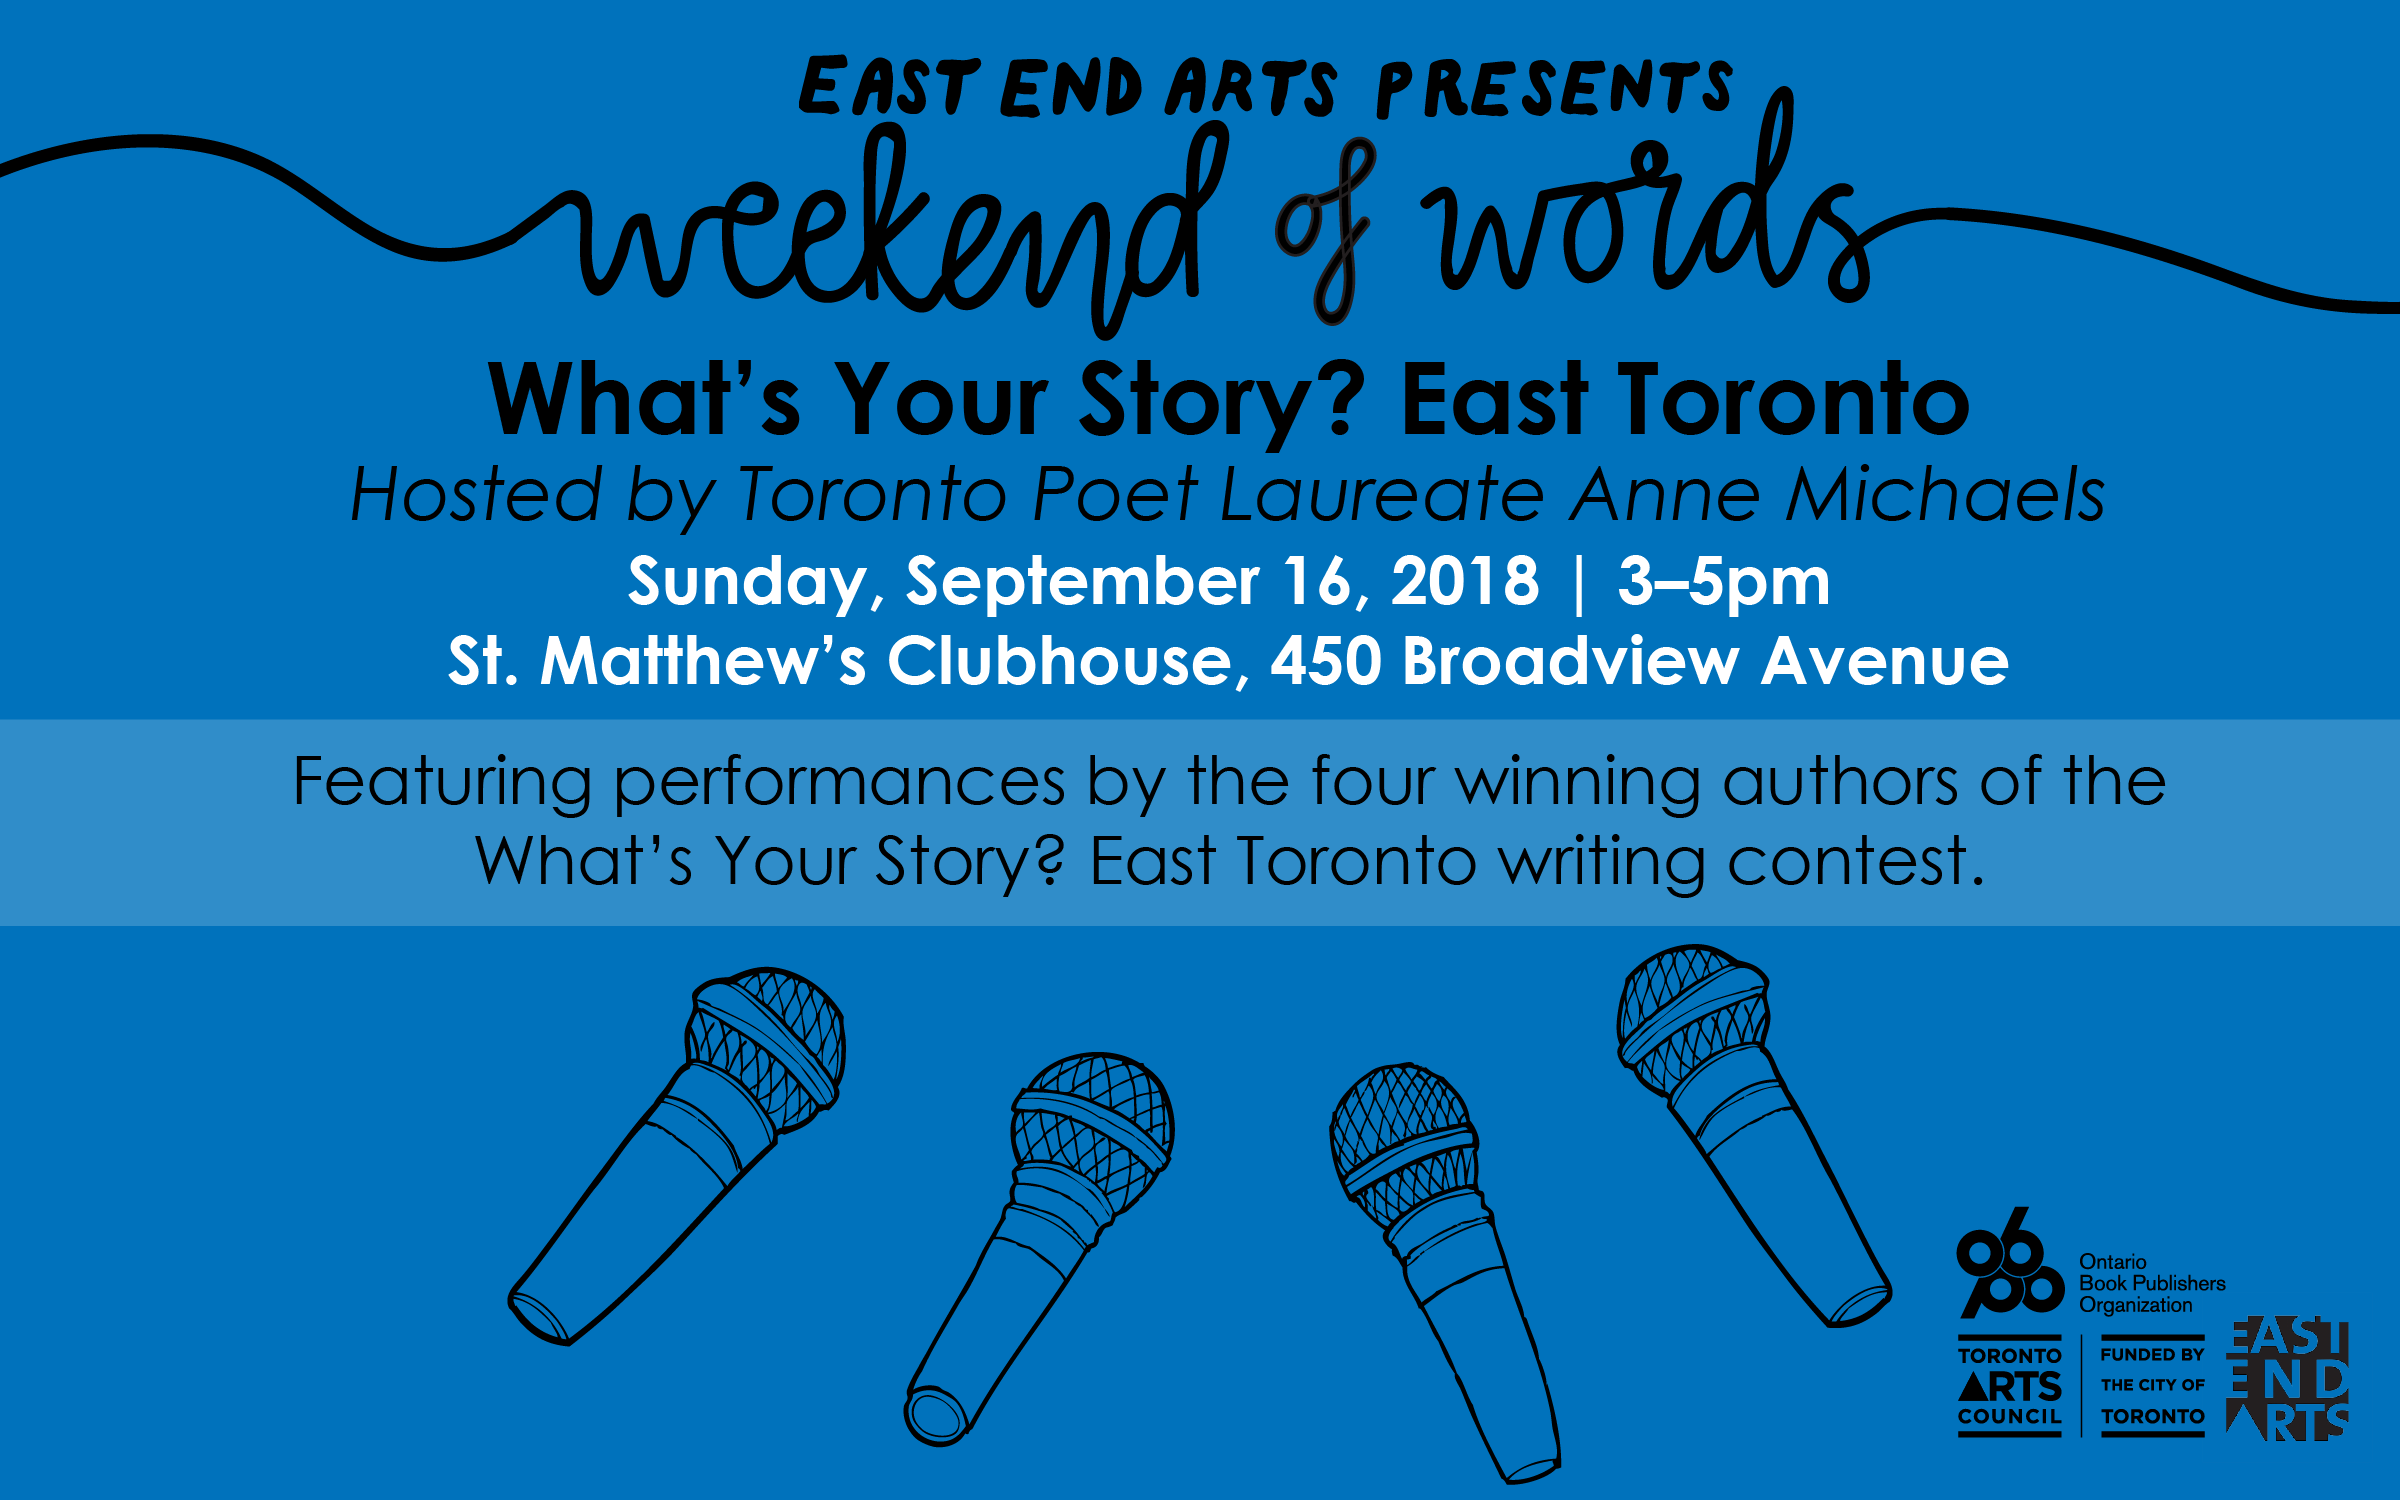 What's Your Story? East Toronto - East End Arts